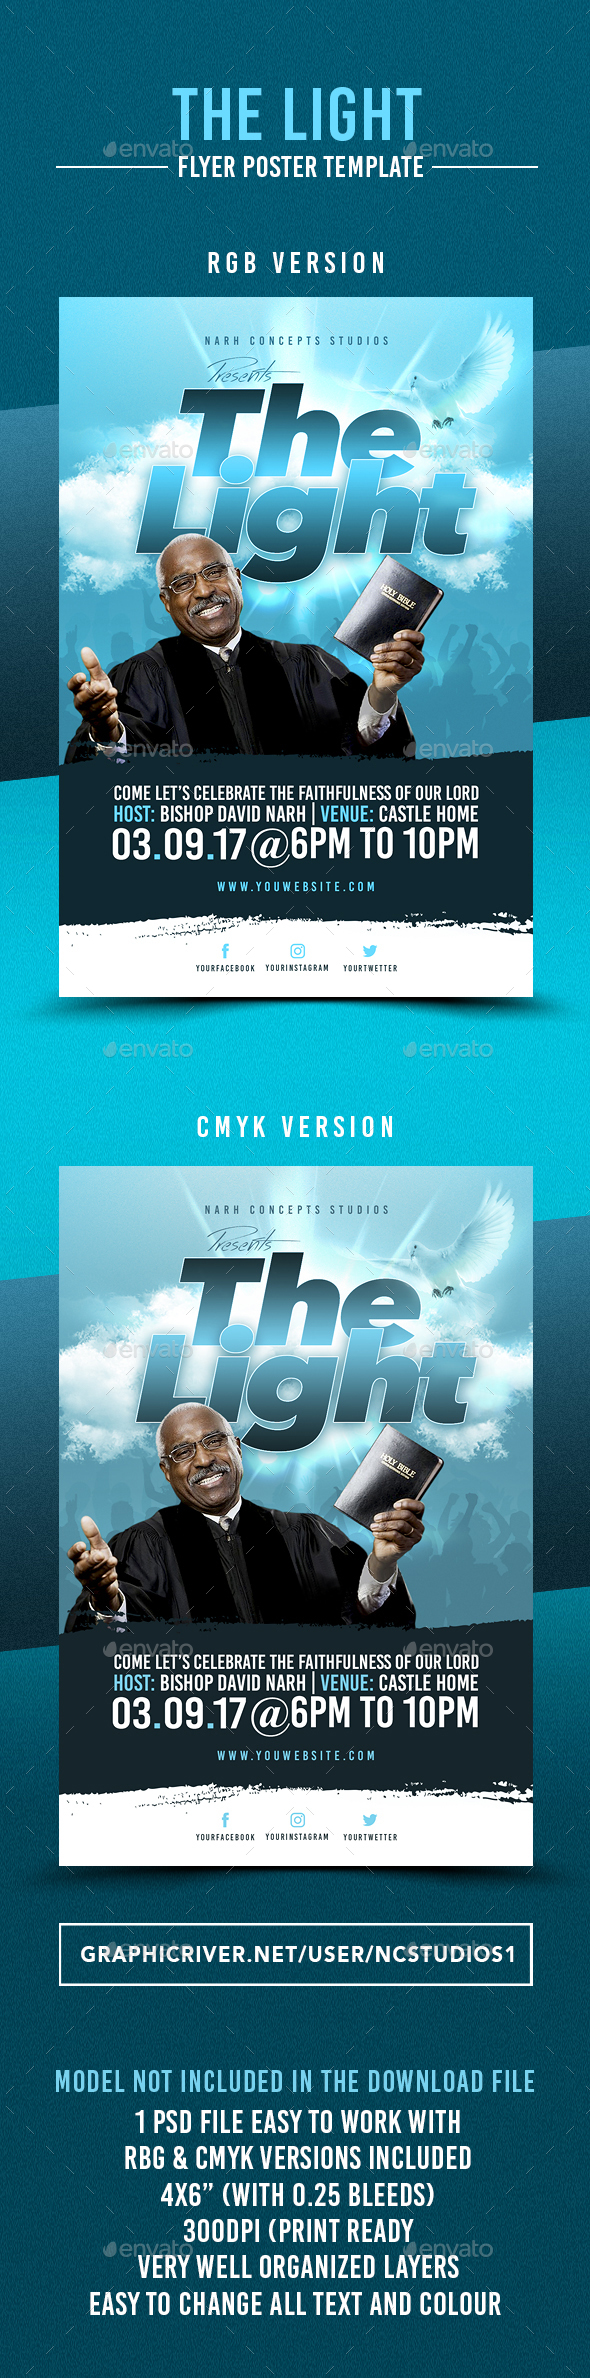 The Light Flyer Template - Flyers Print Templates